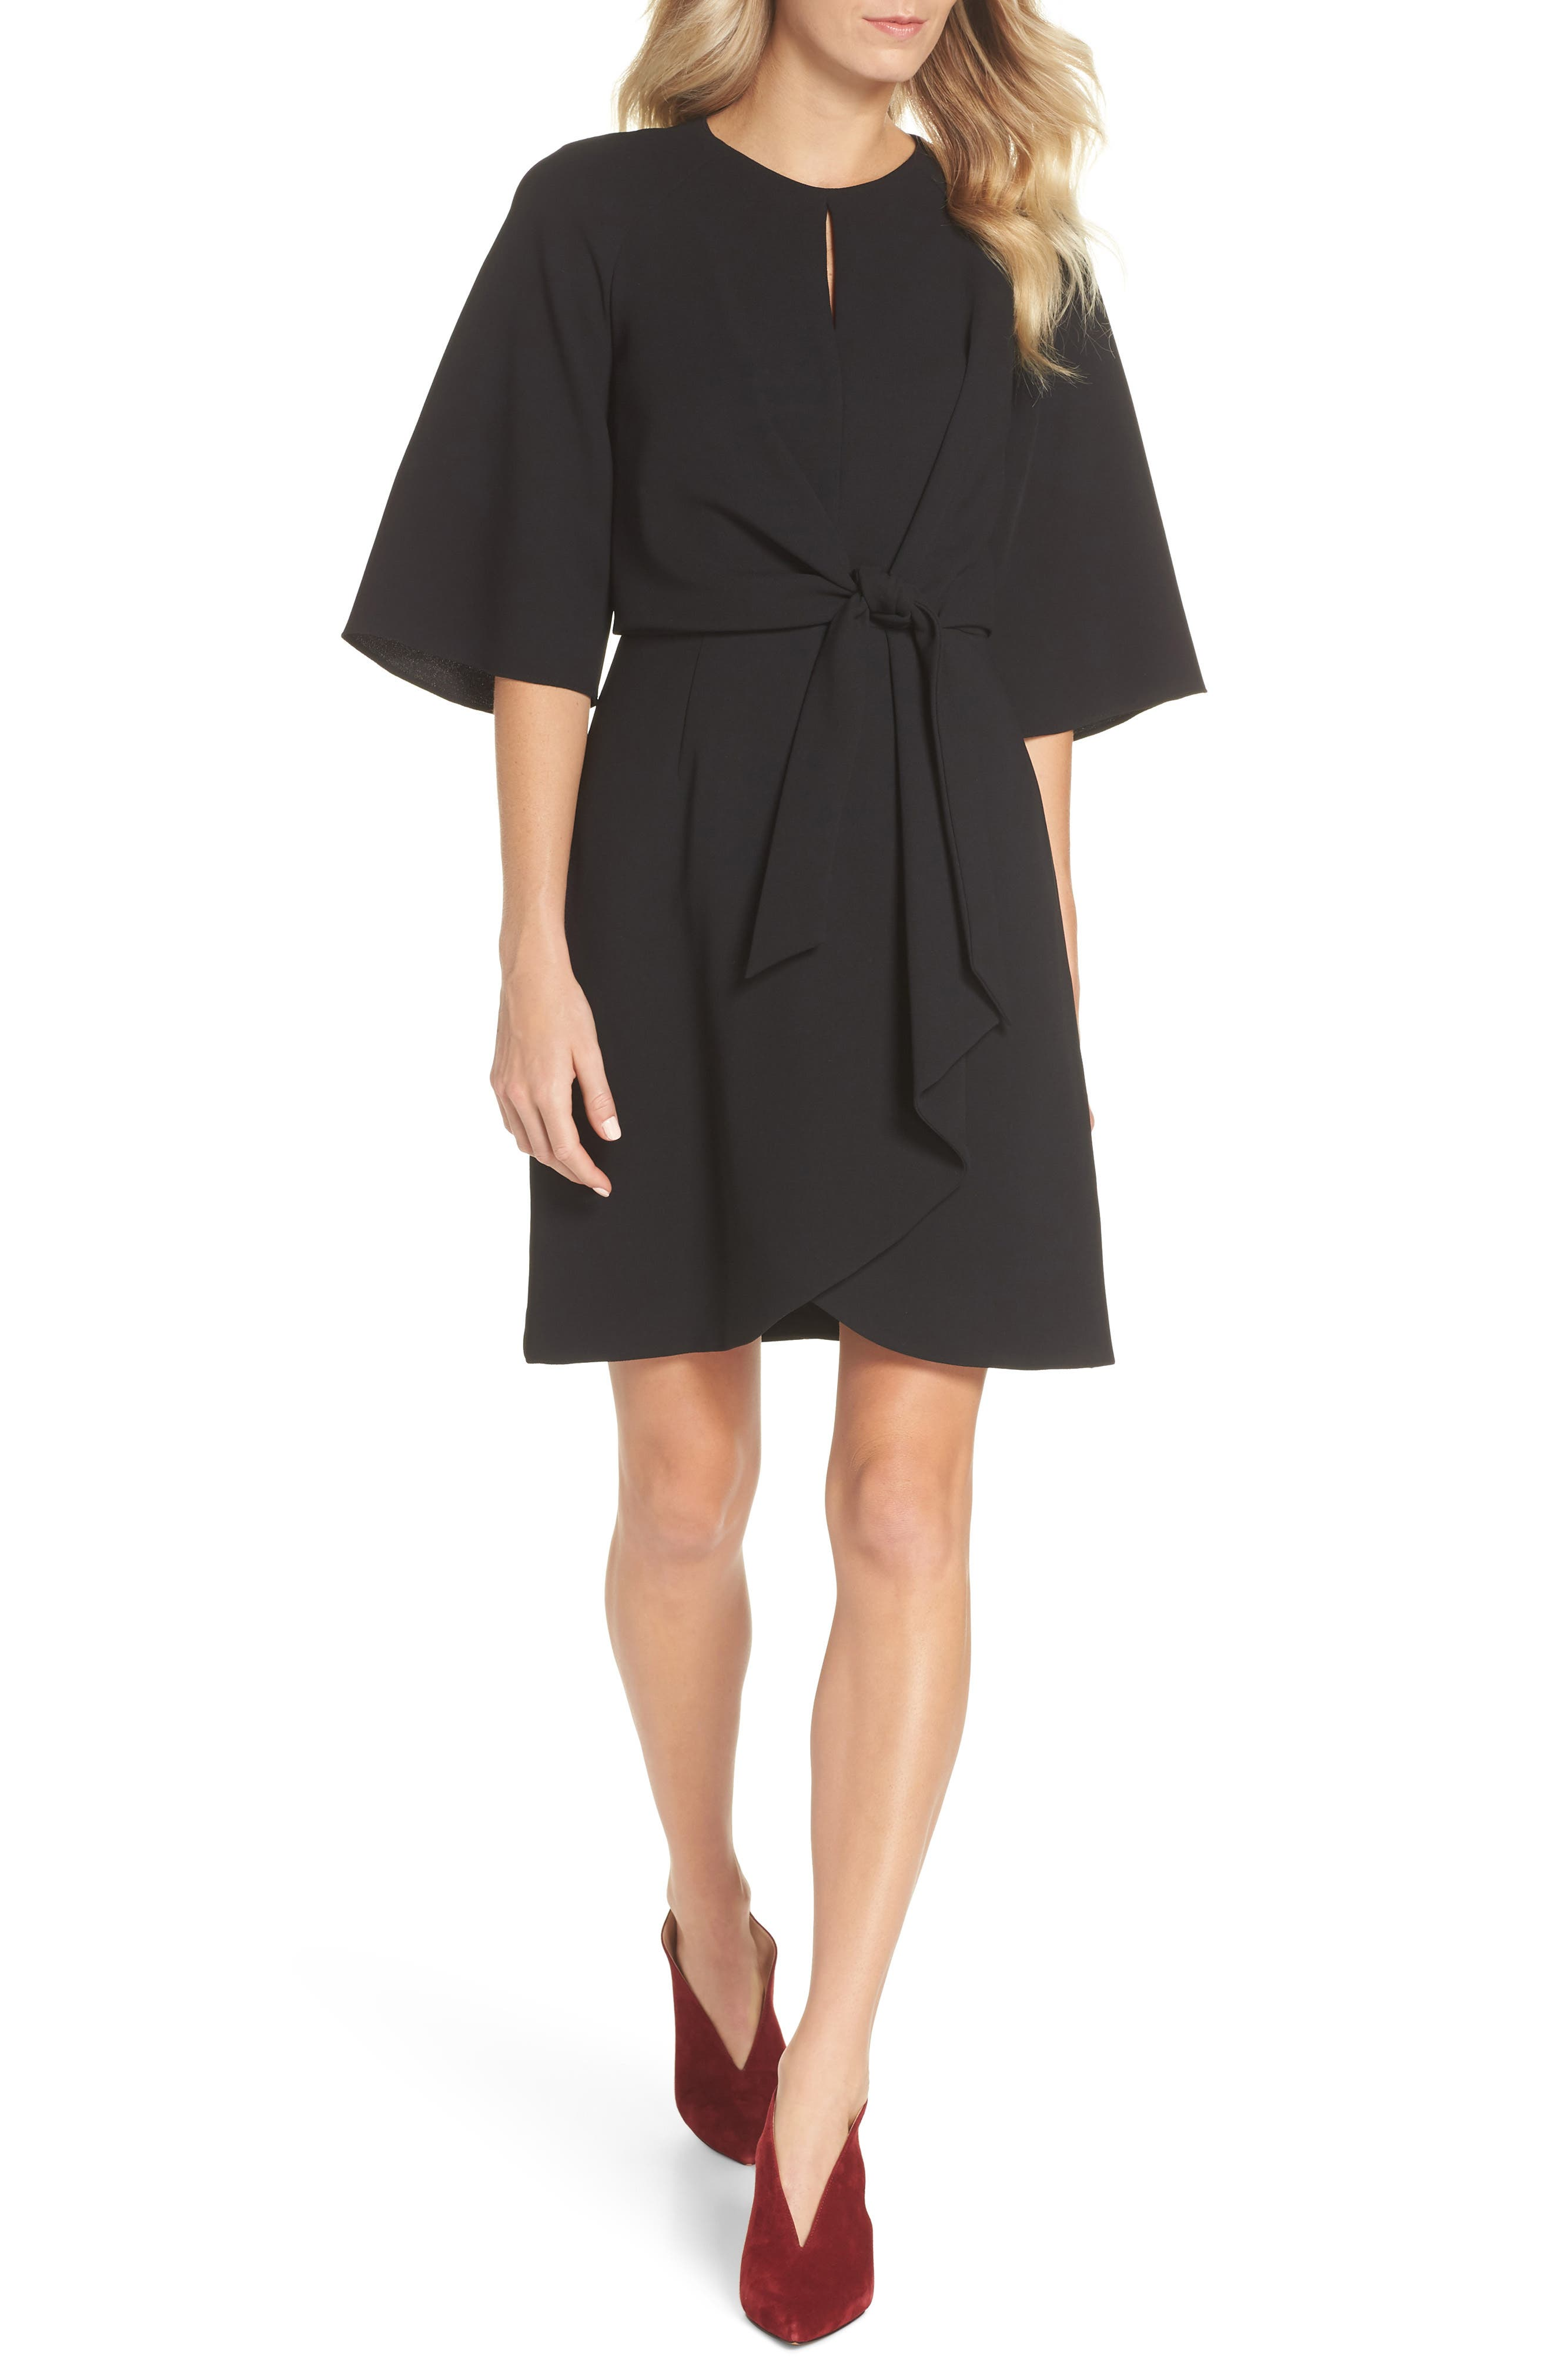 TAHARI Tie Front Crepe Sheath Dress, Main, color, BLACK